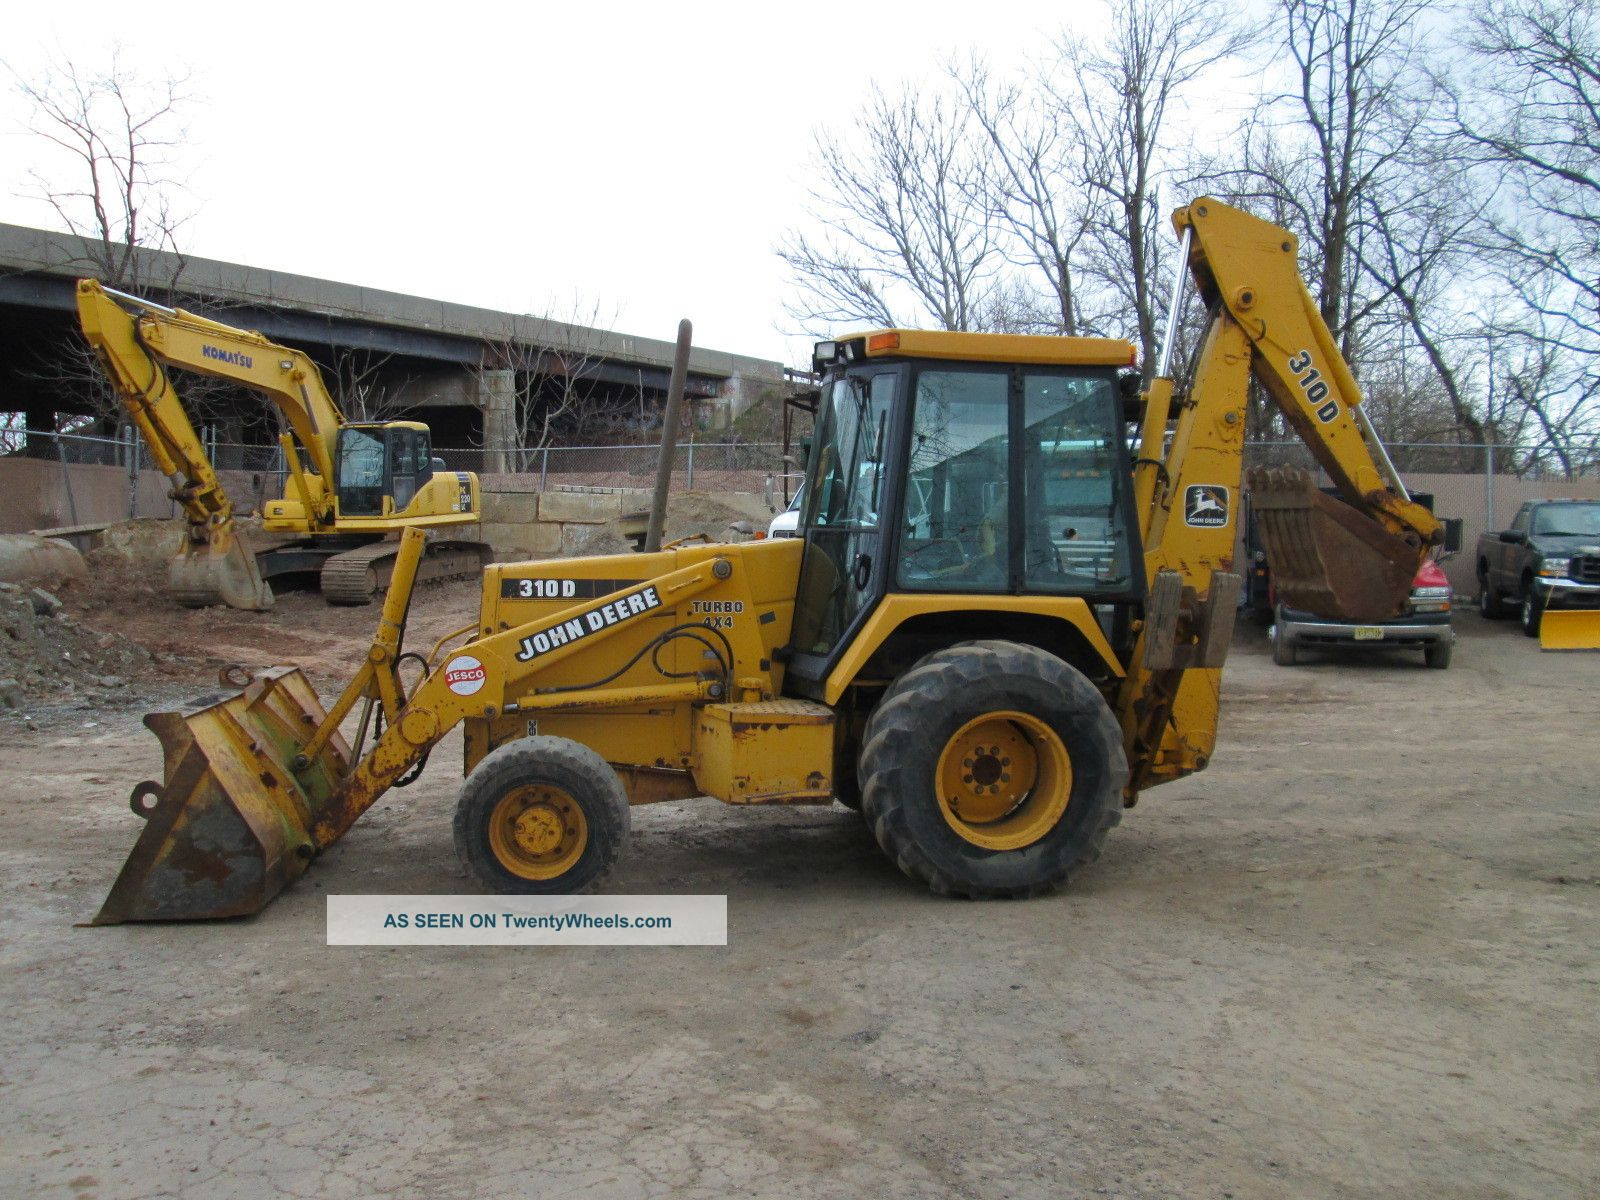 1994 John Deere 310d 4x4 Backhoe - Owner Backhoe Loaders photo